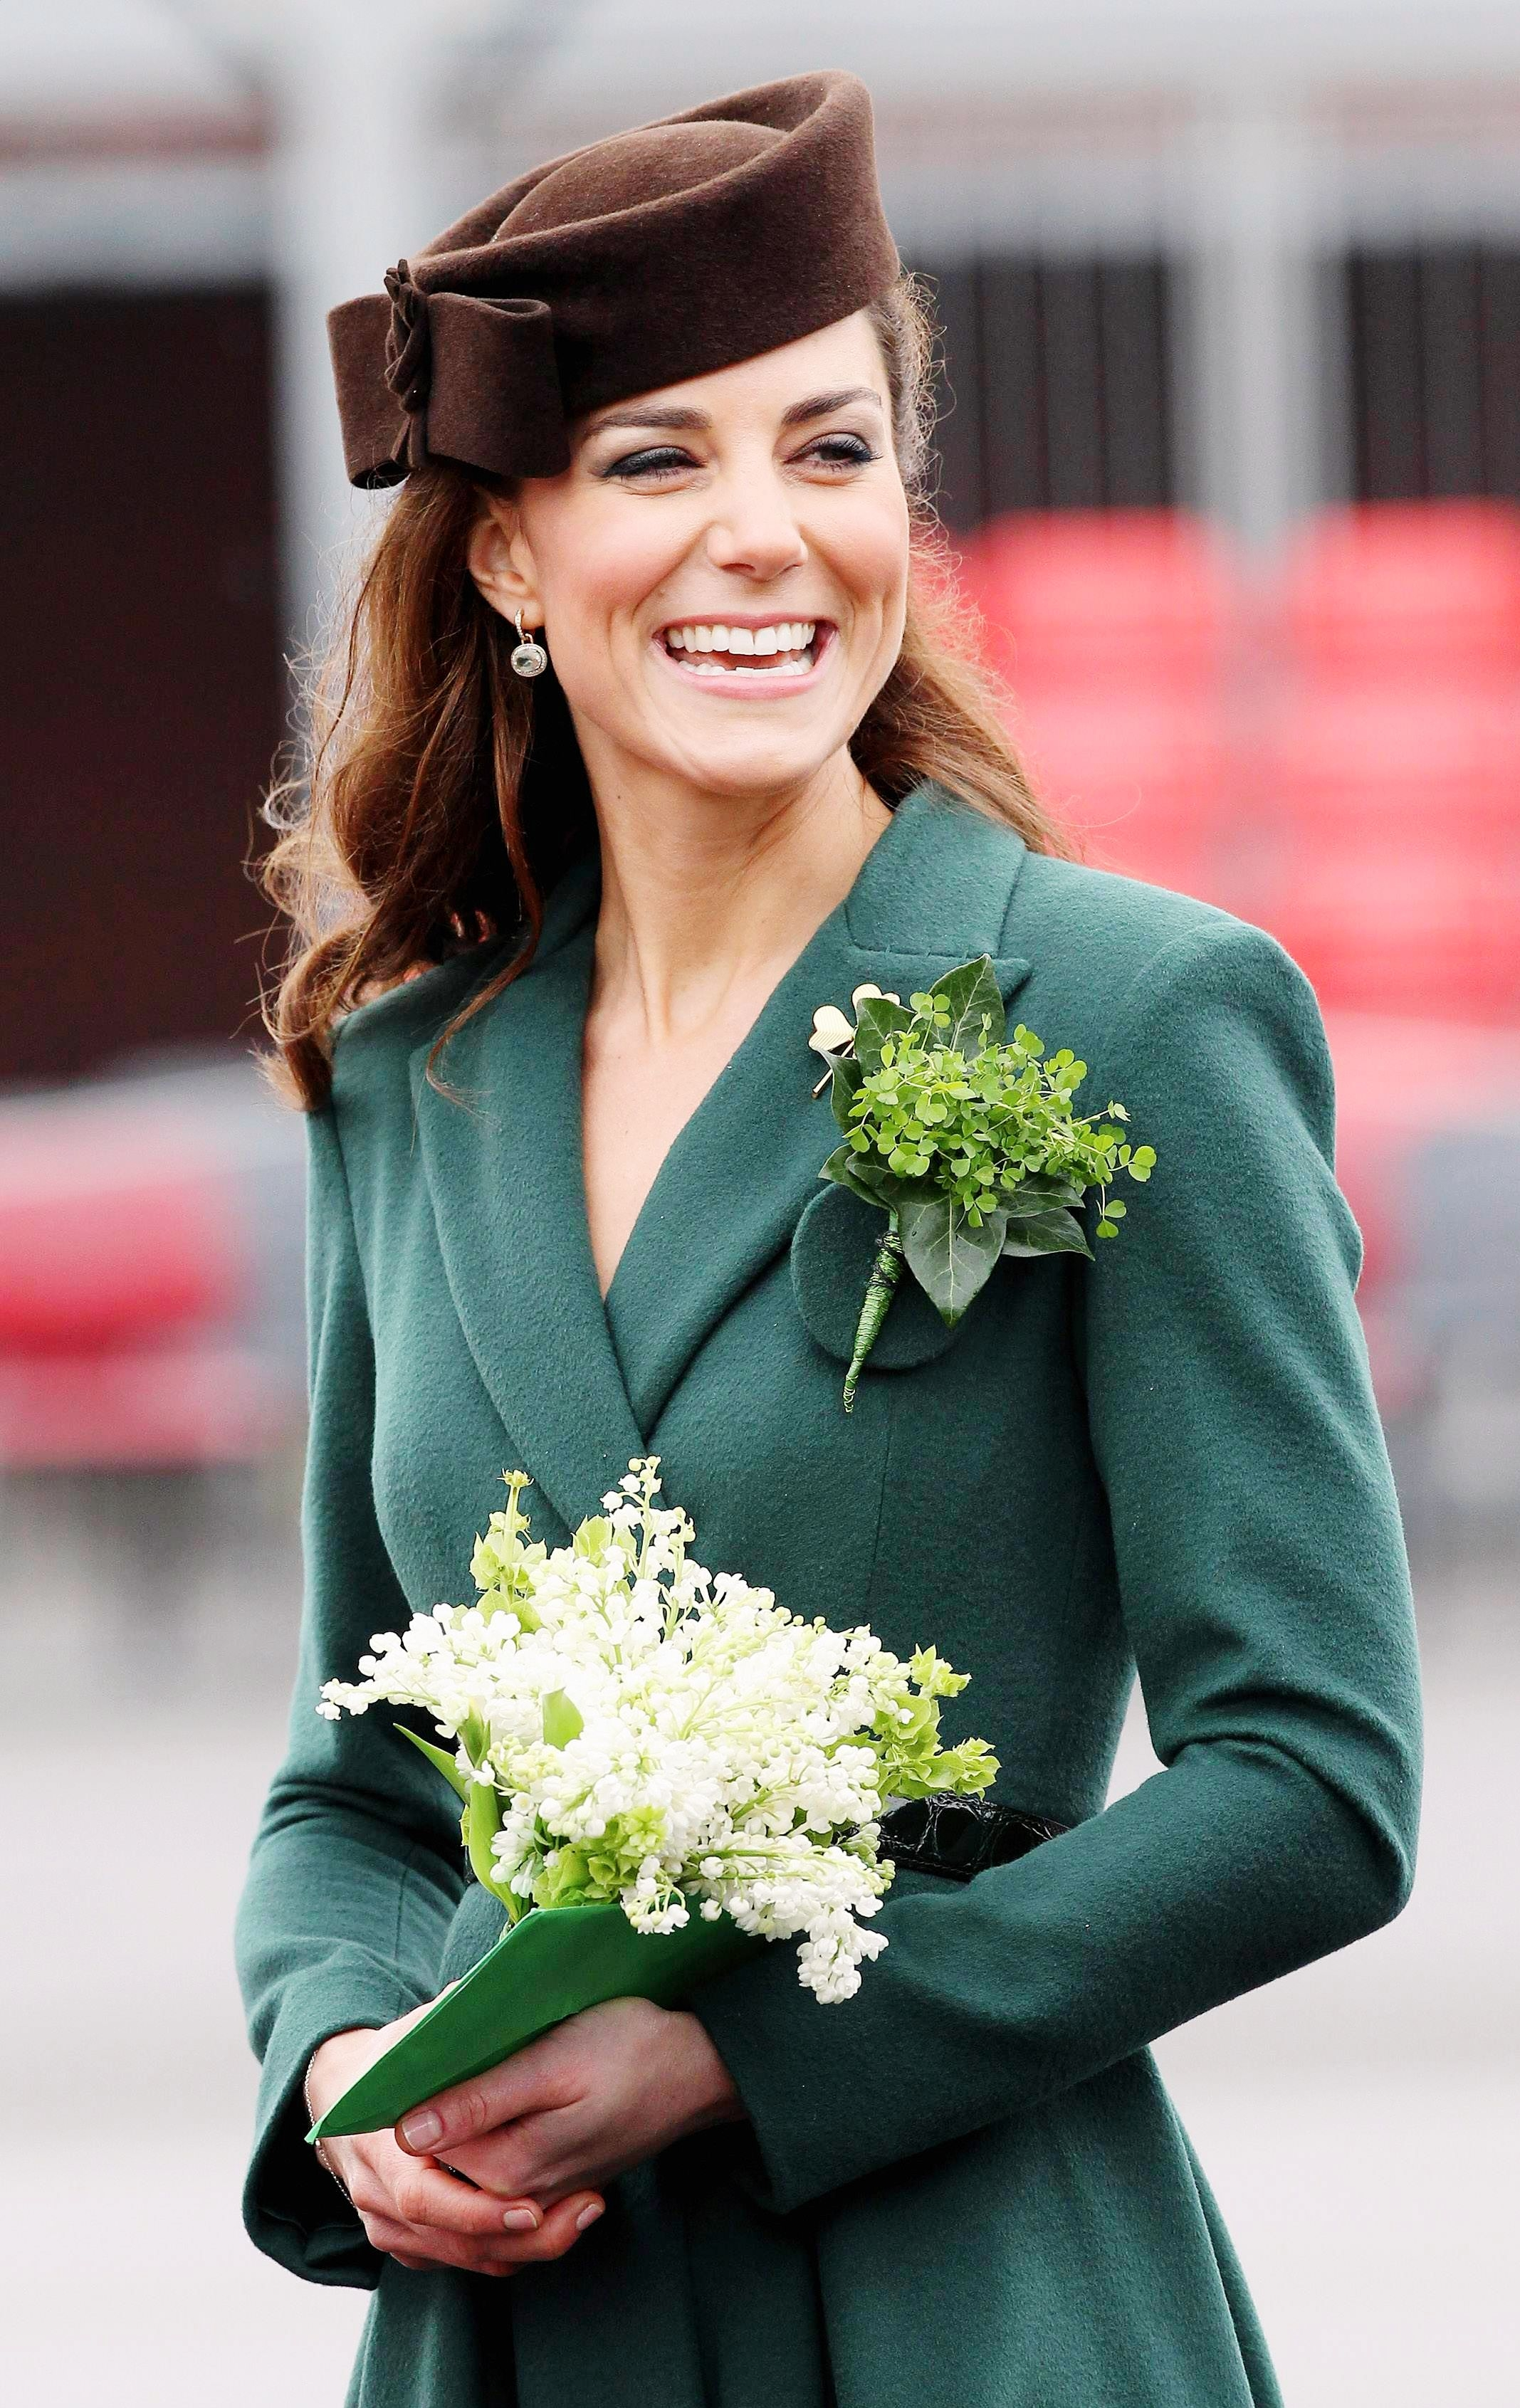 Duchess of Cambridge wears a shamrock during a visit to Aldershot Barracks in Aldershot.